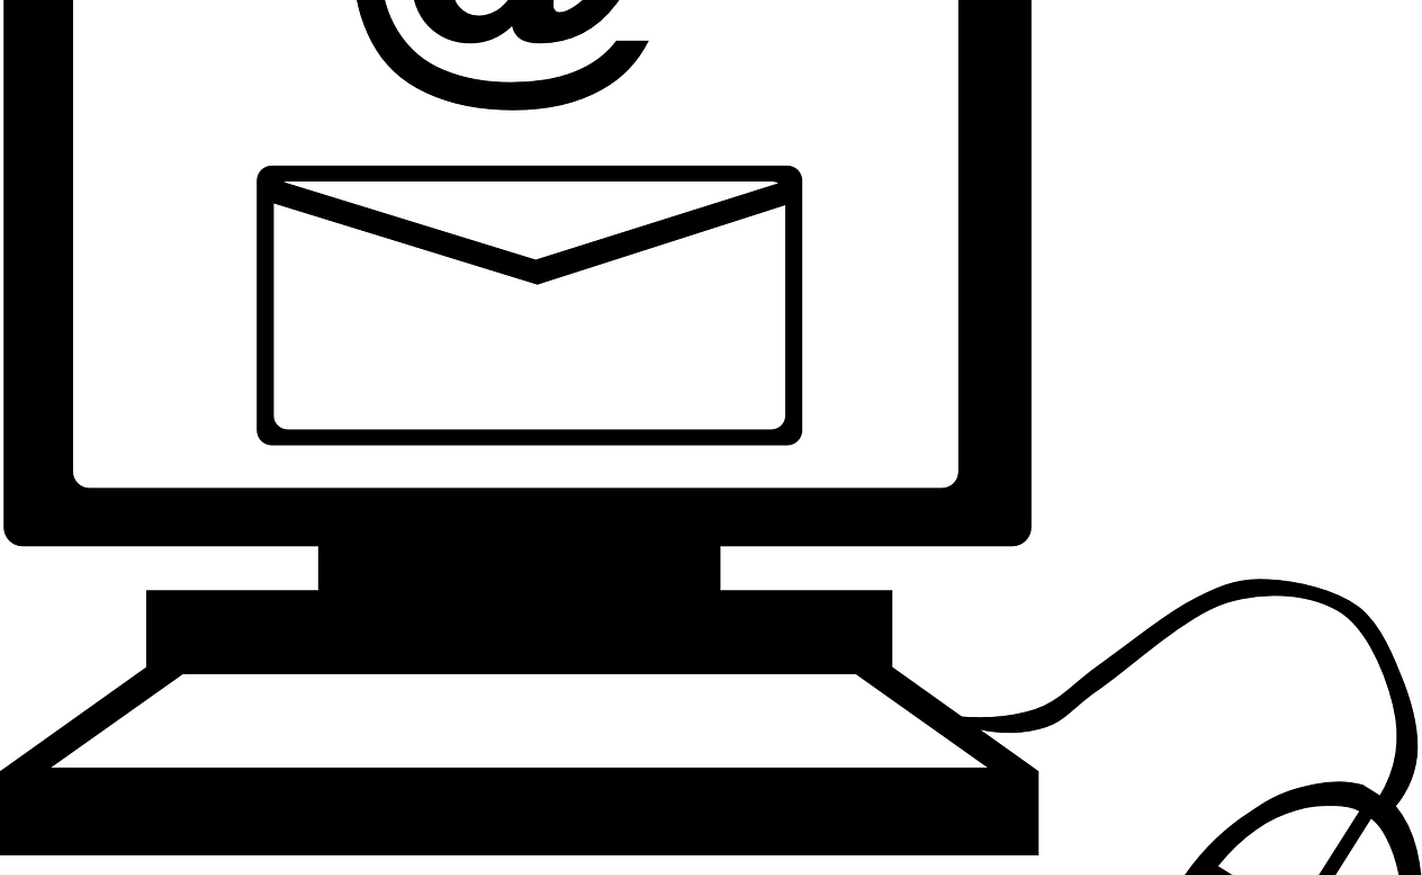 Mailbox clipart animated. Inspirational of email transparent